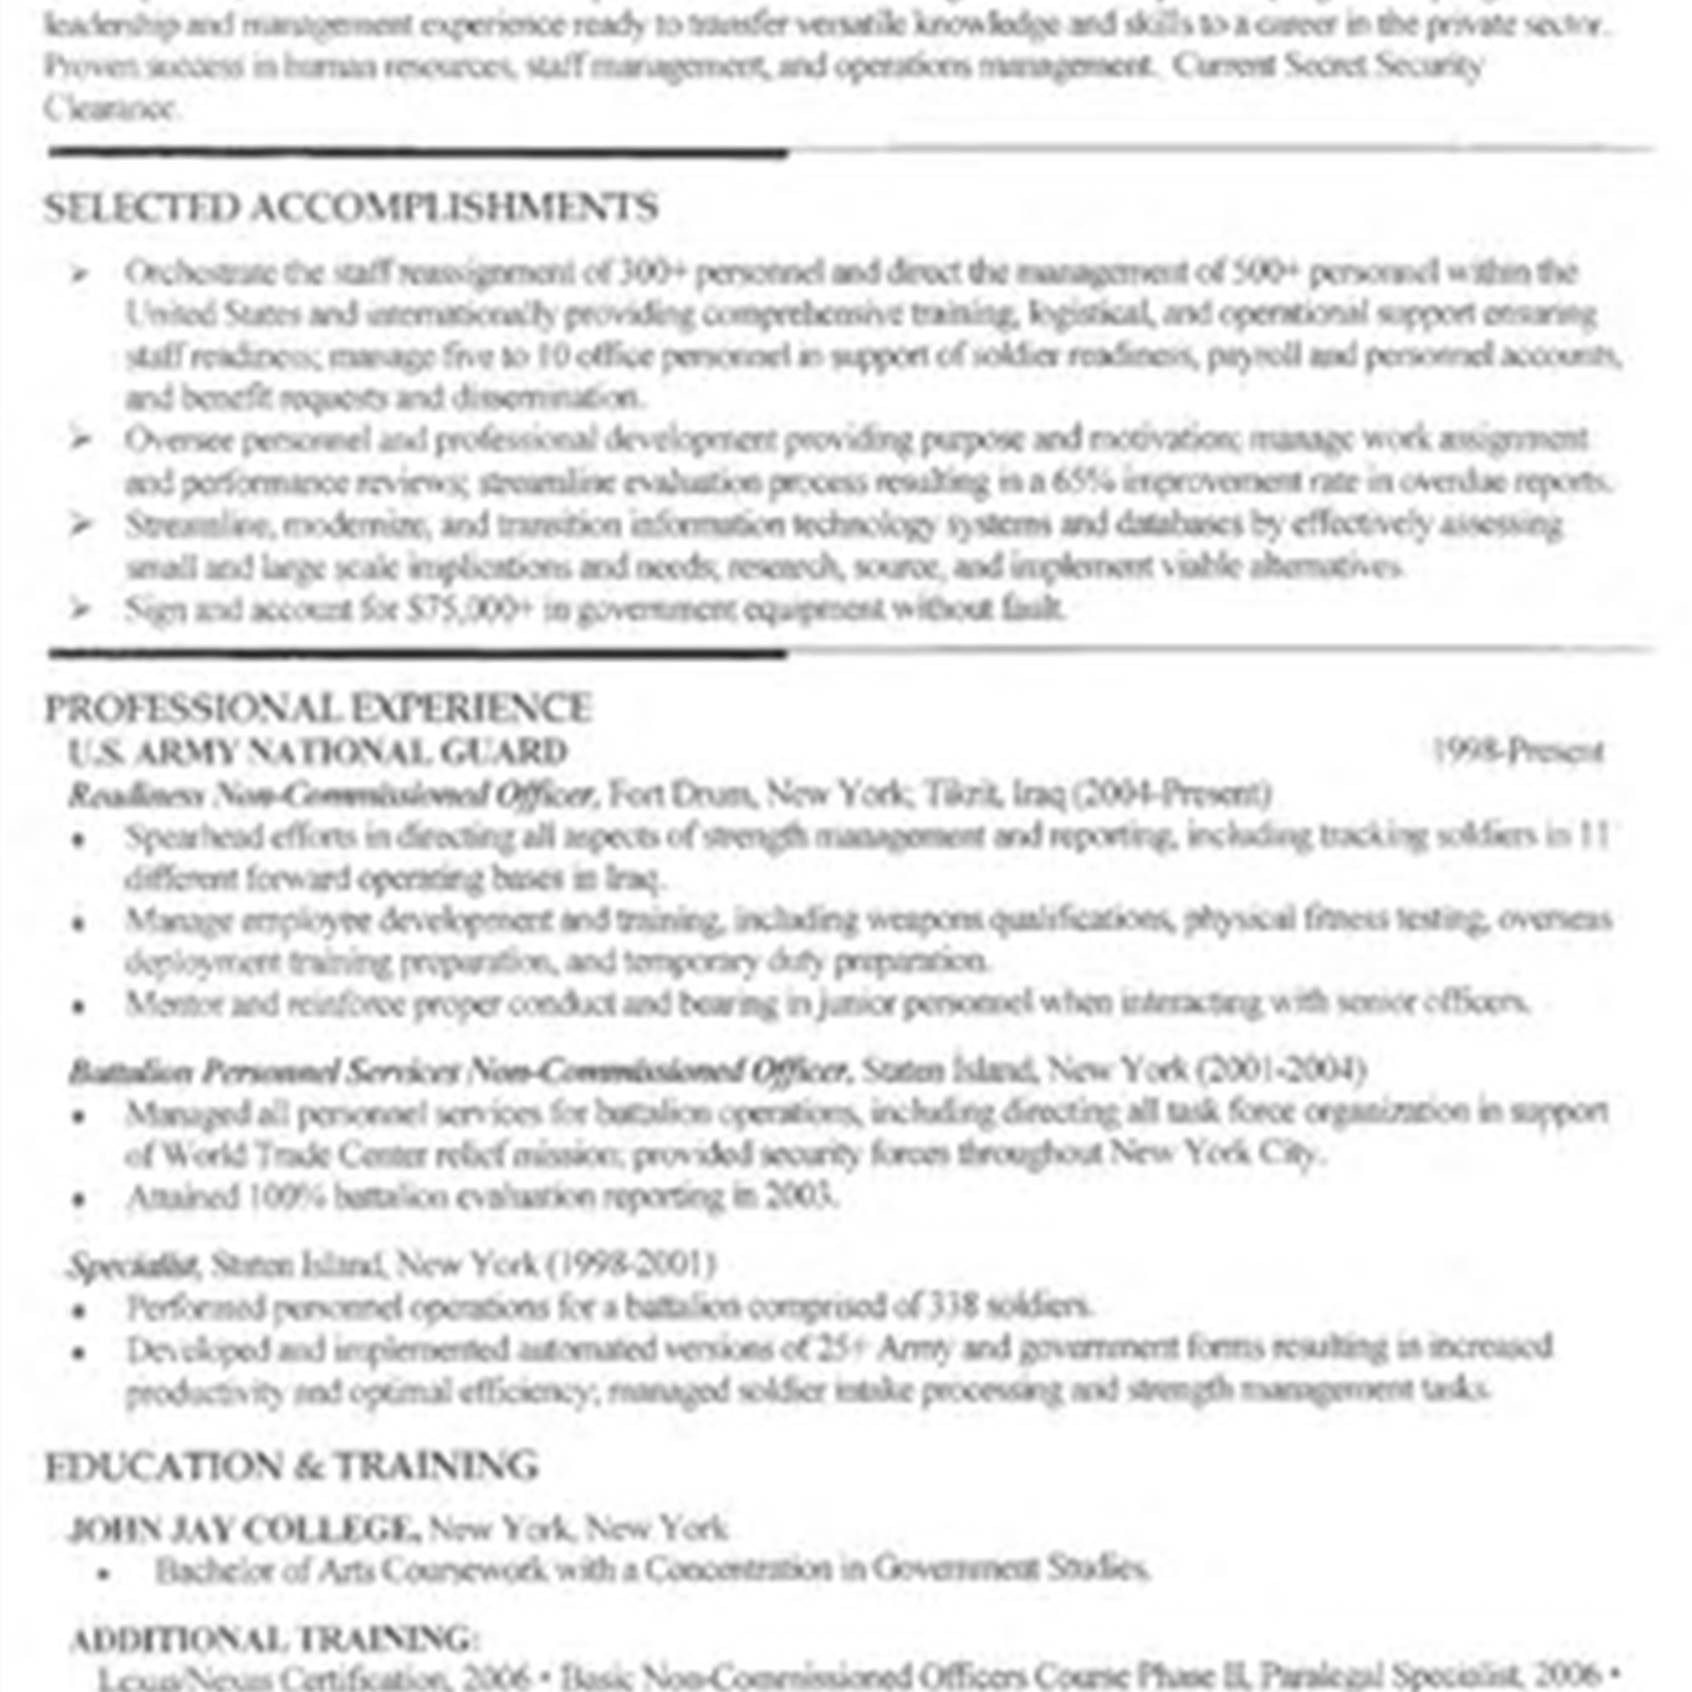 Resume for Government Job - How to Write A Resume for Government Jobs Inspirational Government